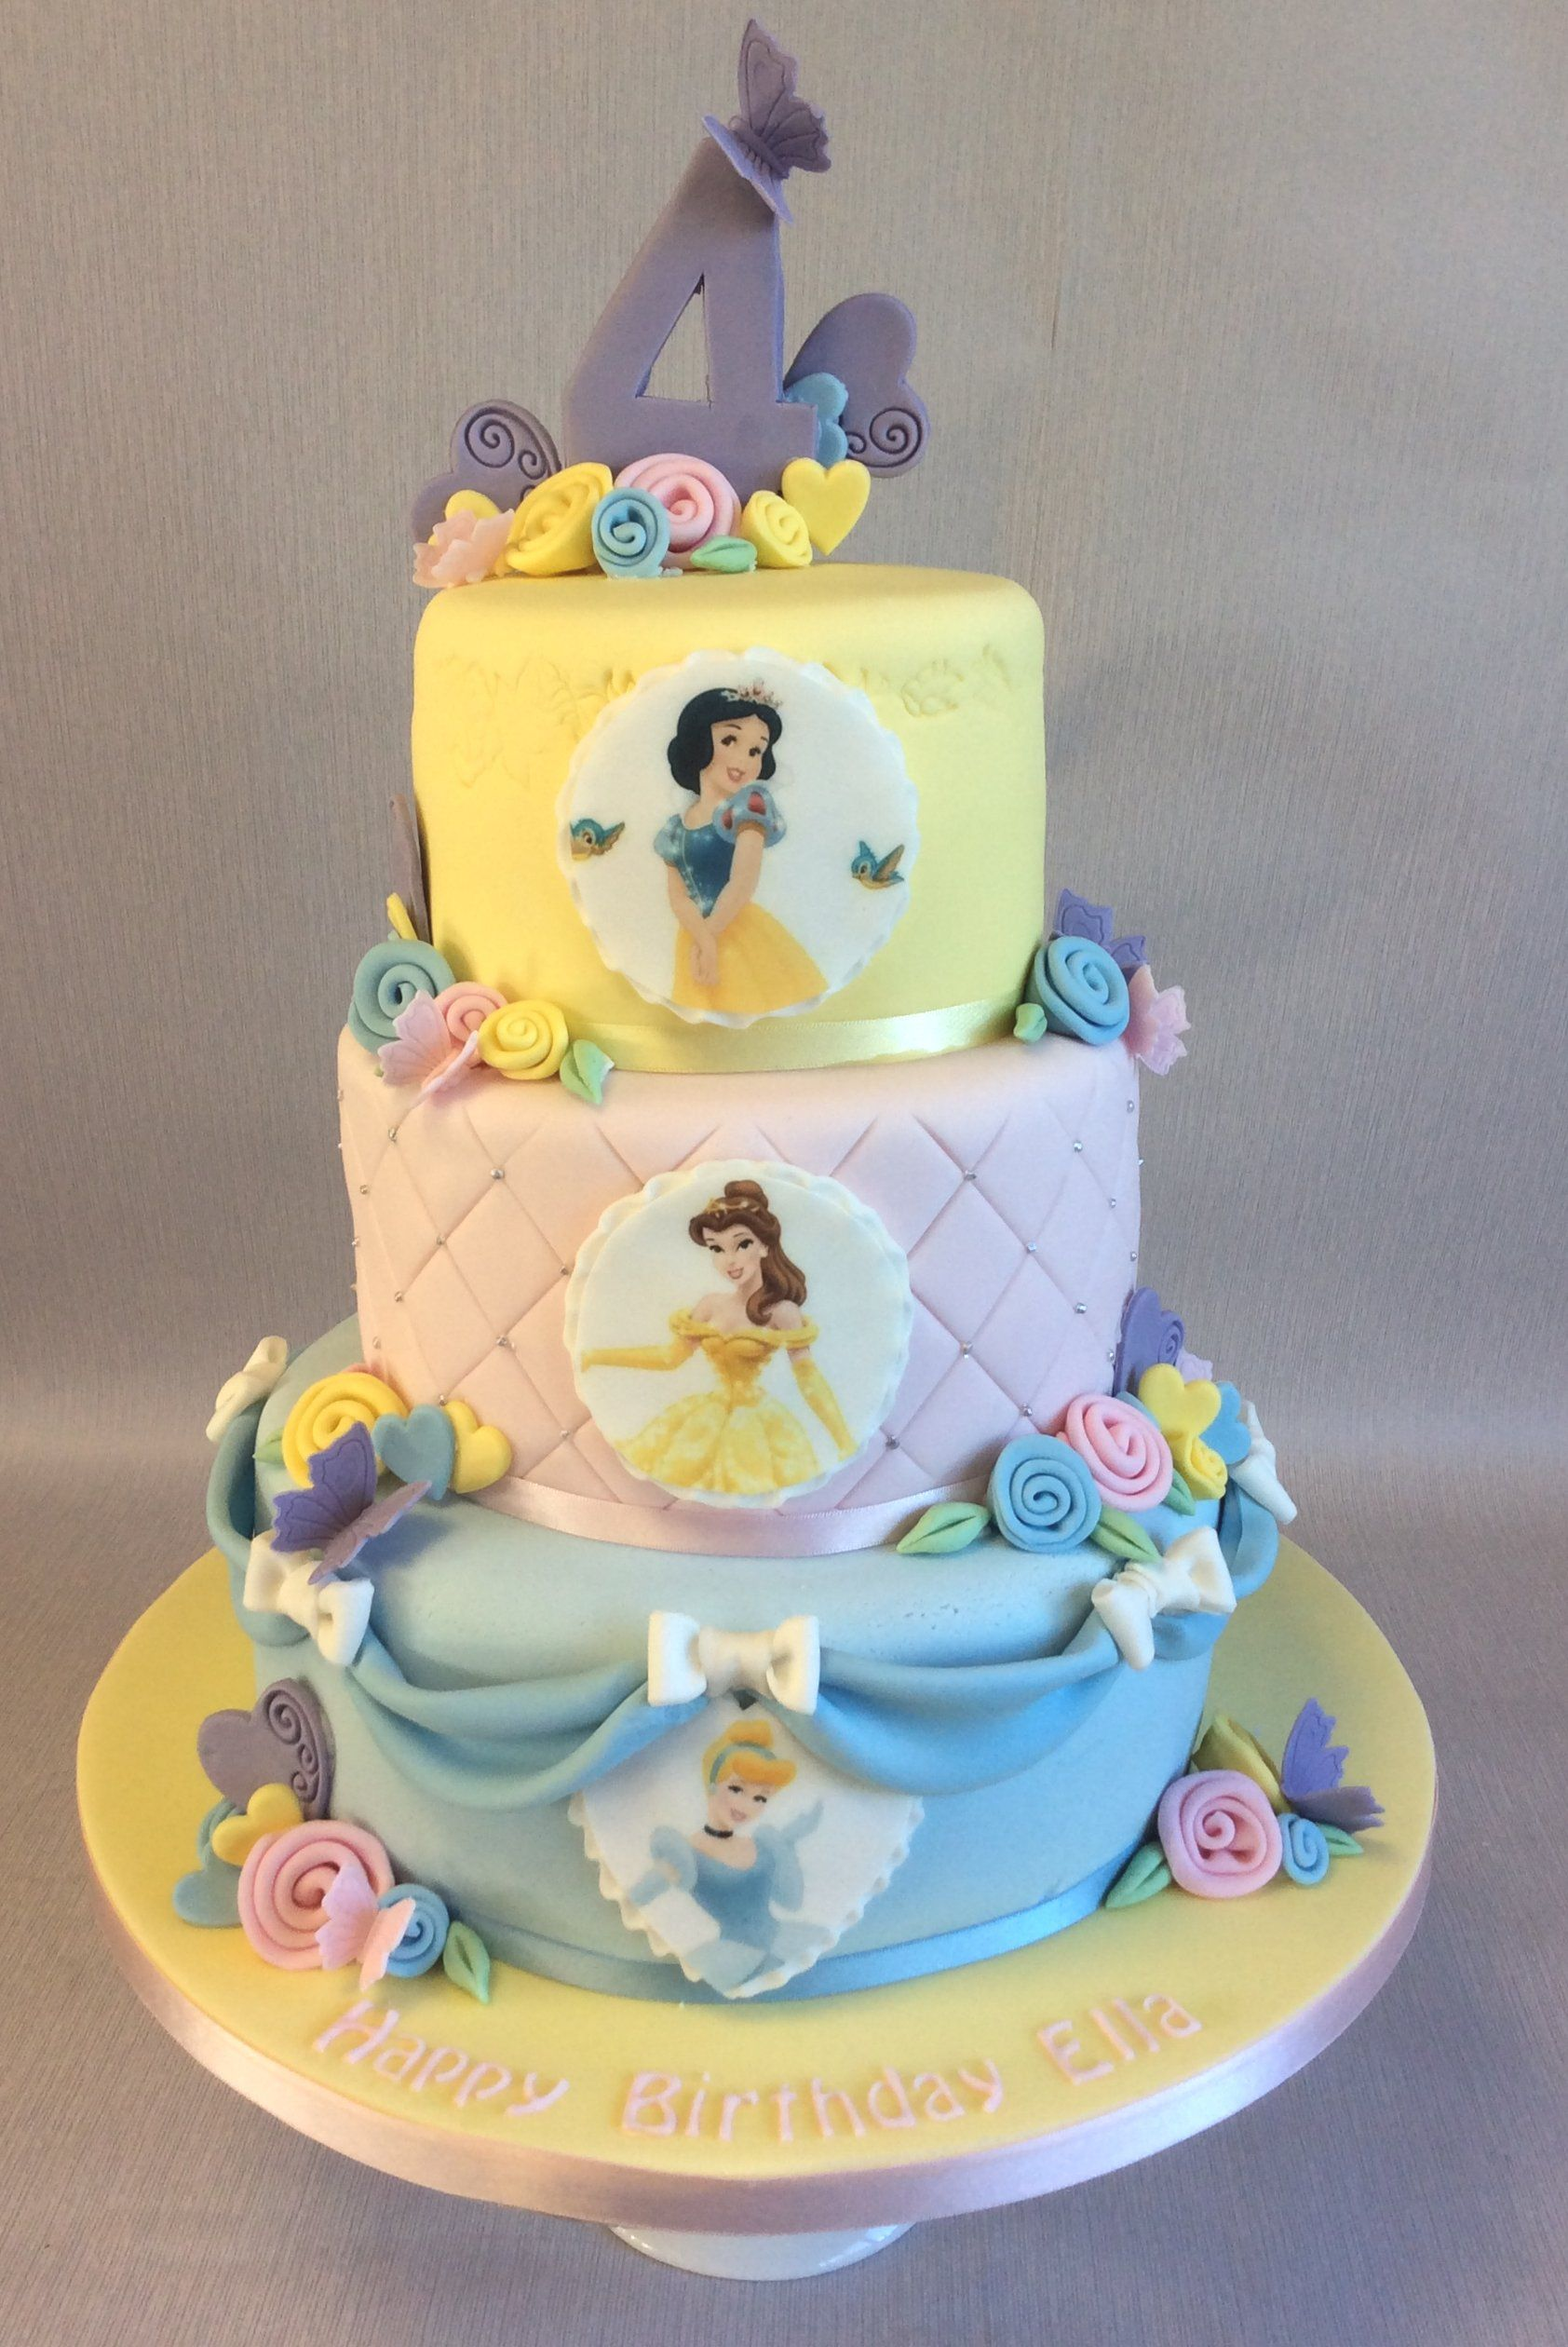 Terrific 3 Tier Pastel Colours Disney Princess Birthday Cake With Images Personalised Birthday Cards Petedlily Jamesorg